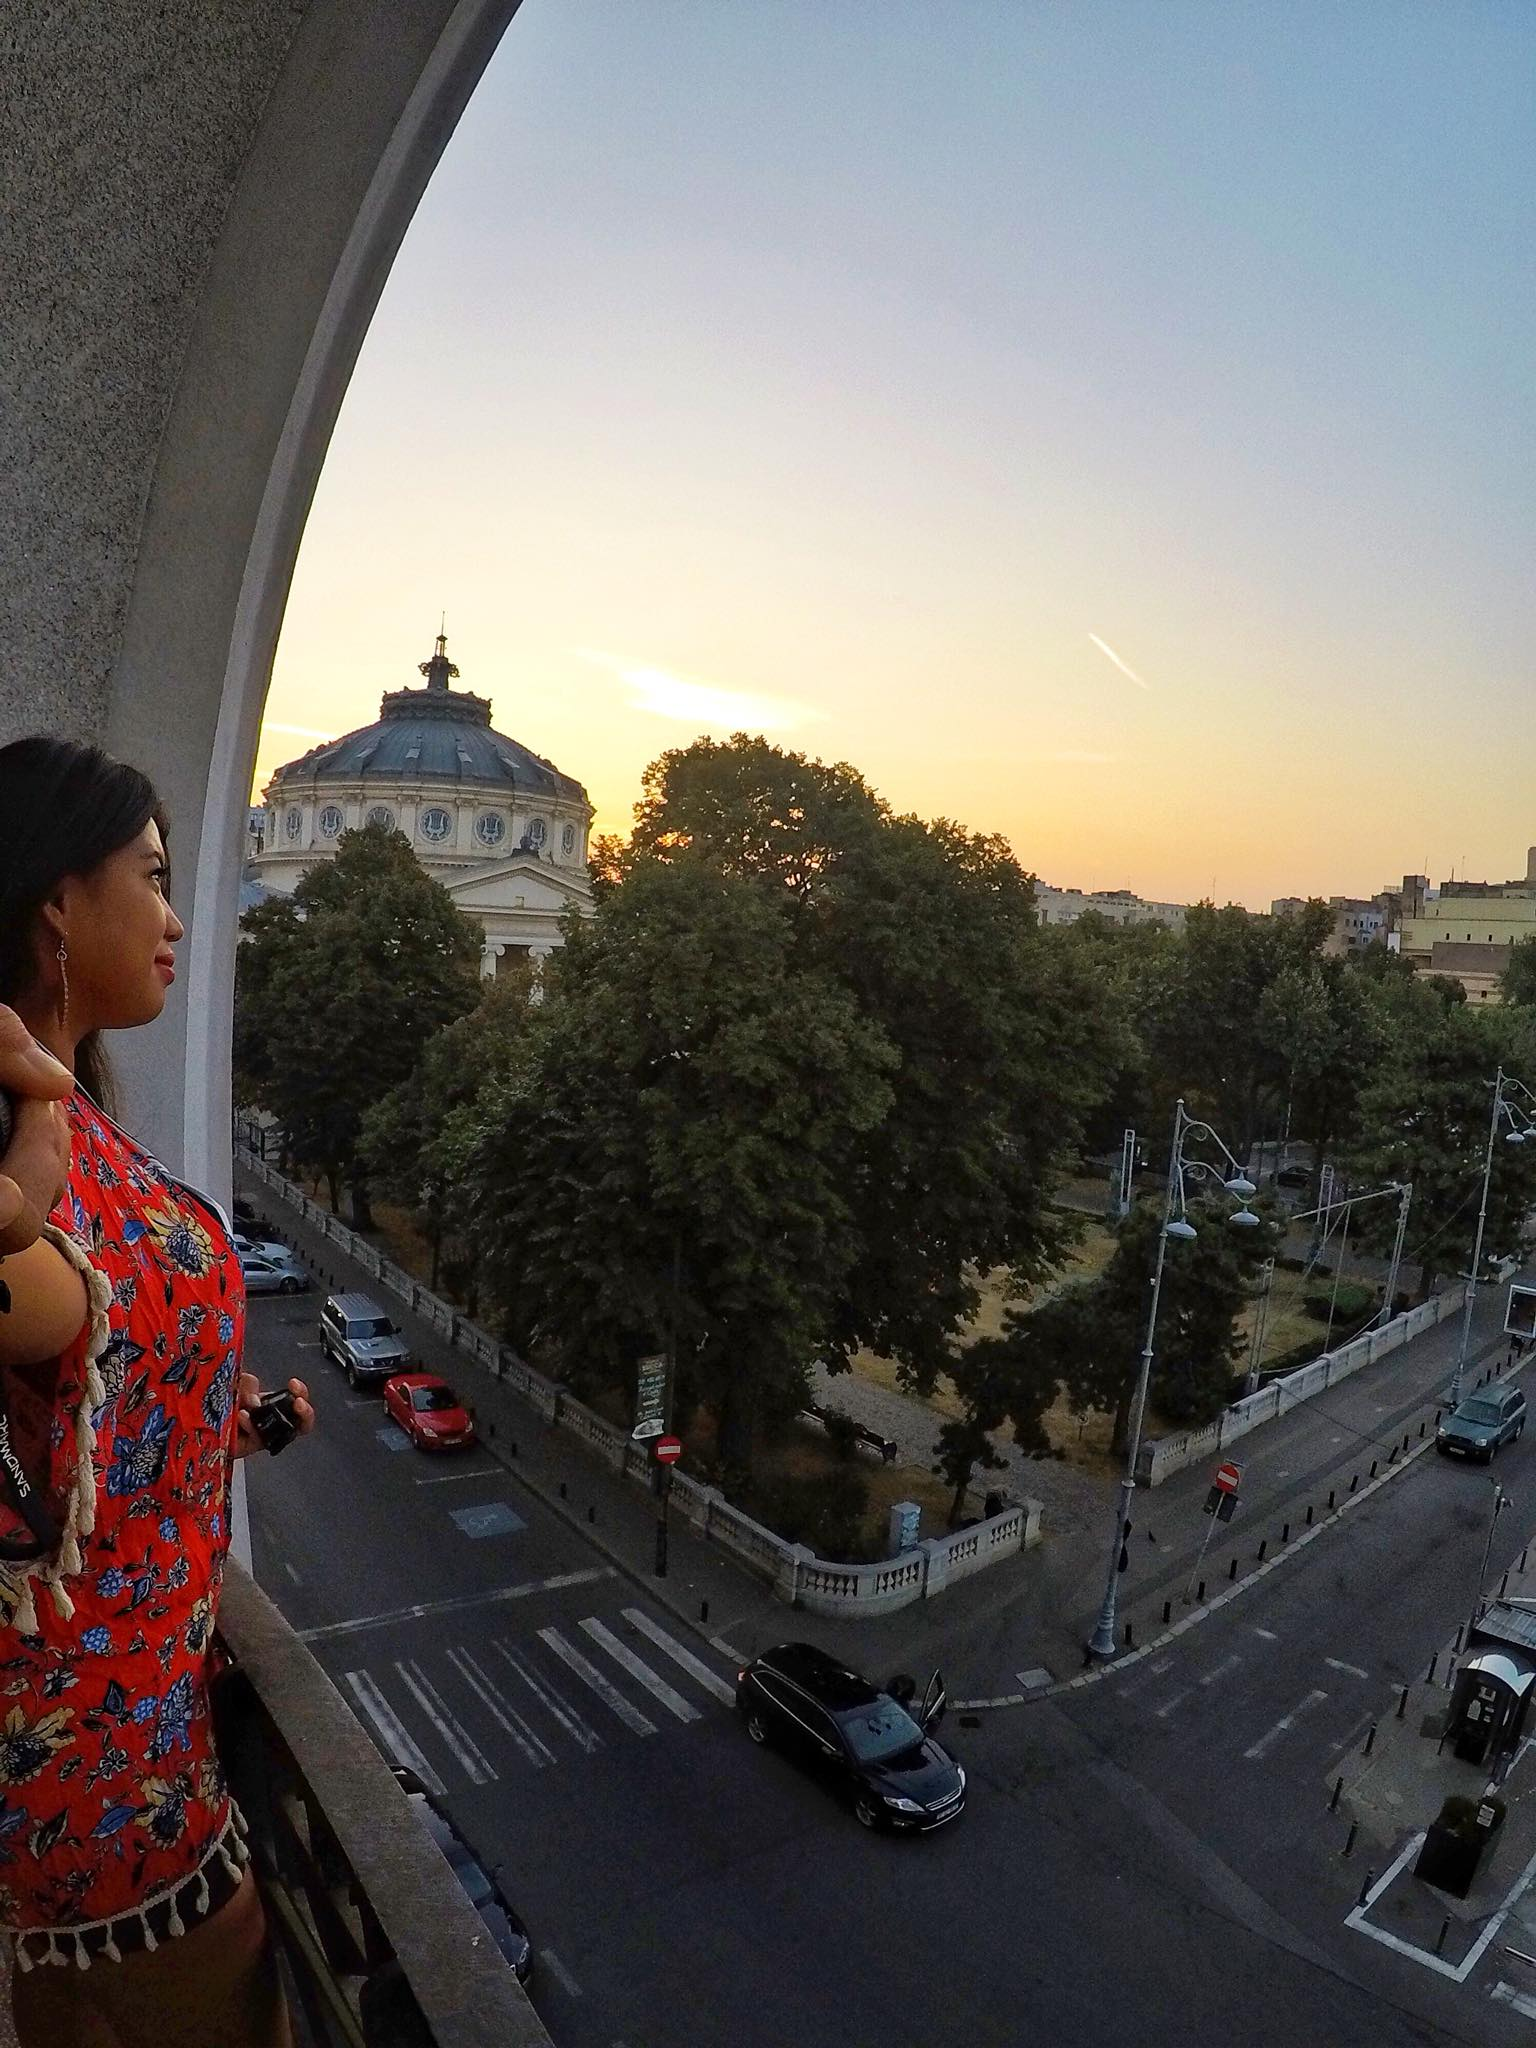 Kach Solo Travels Day 17: Made it to my country #106 - ROMANIA!